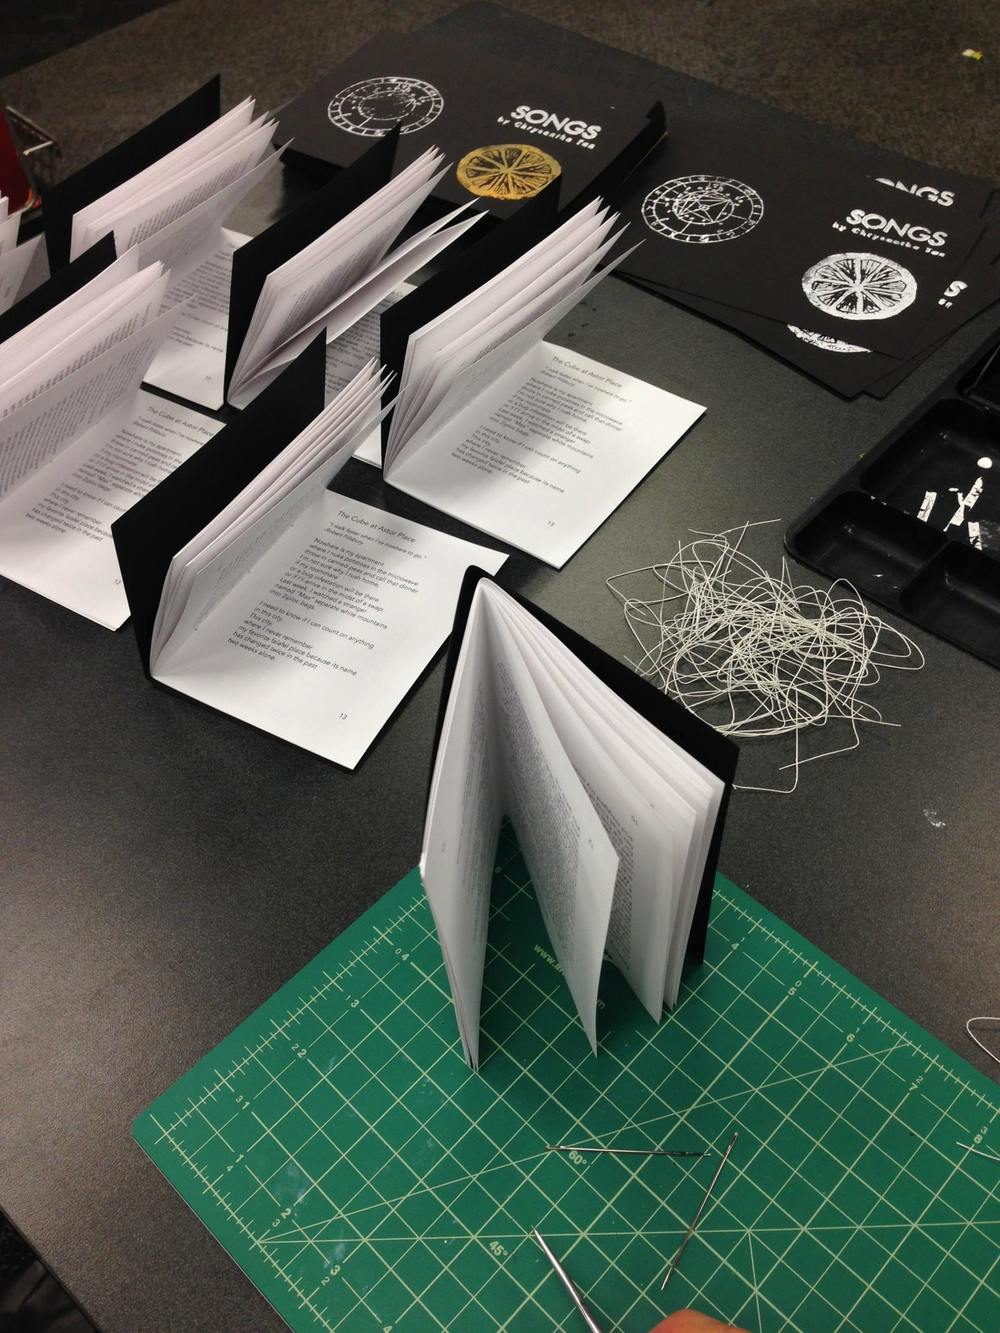 stitching the chapbooks